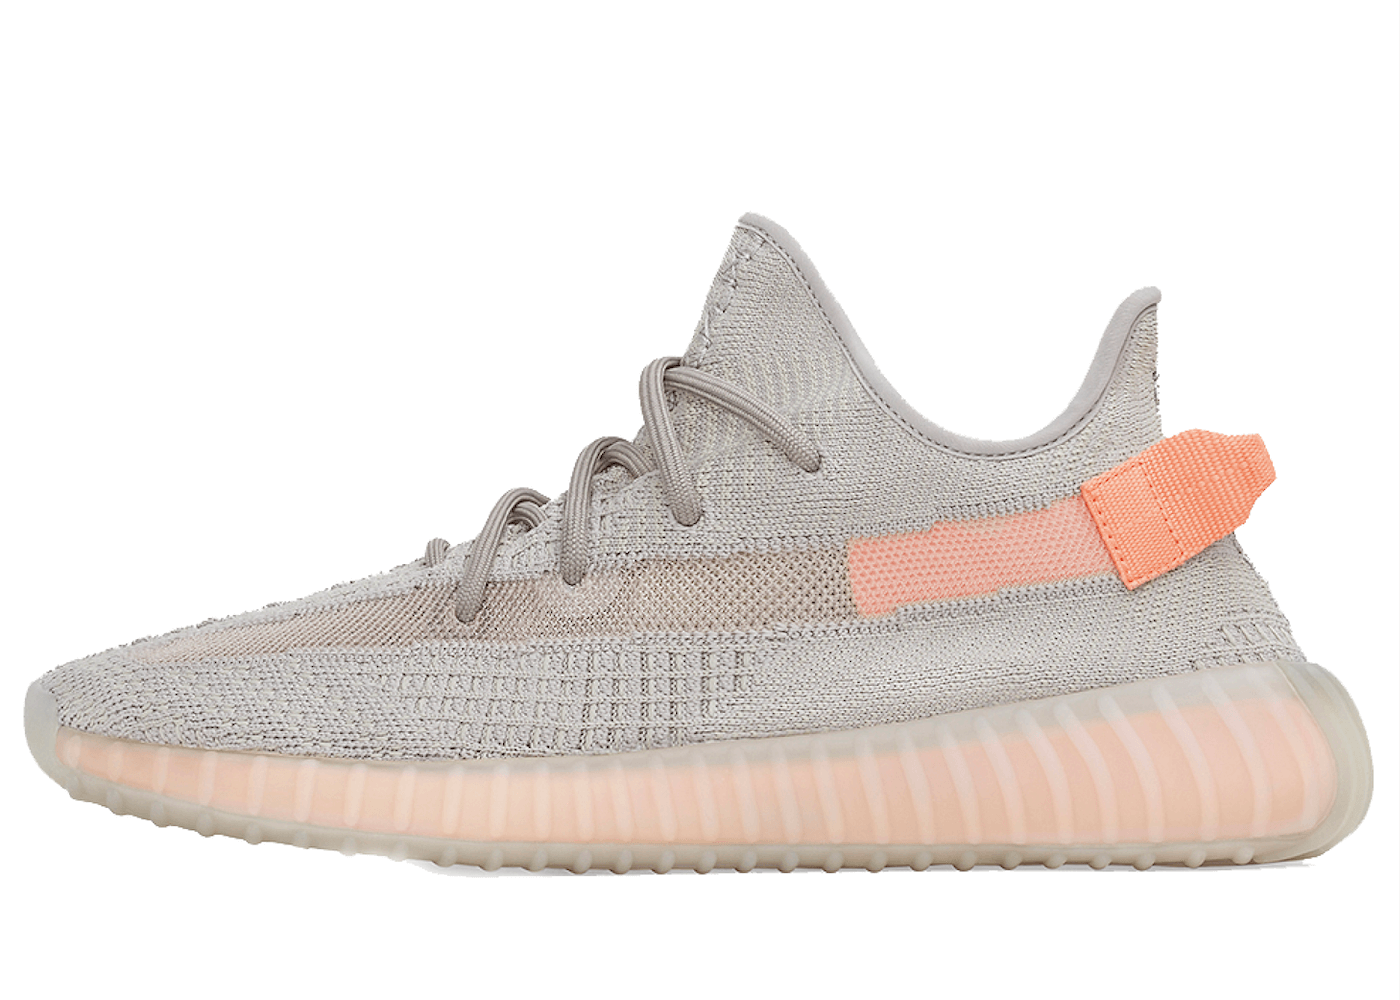 Adidas Yeezy Boost 350 V2 True Formの写真